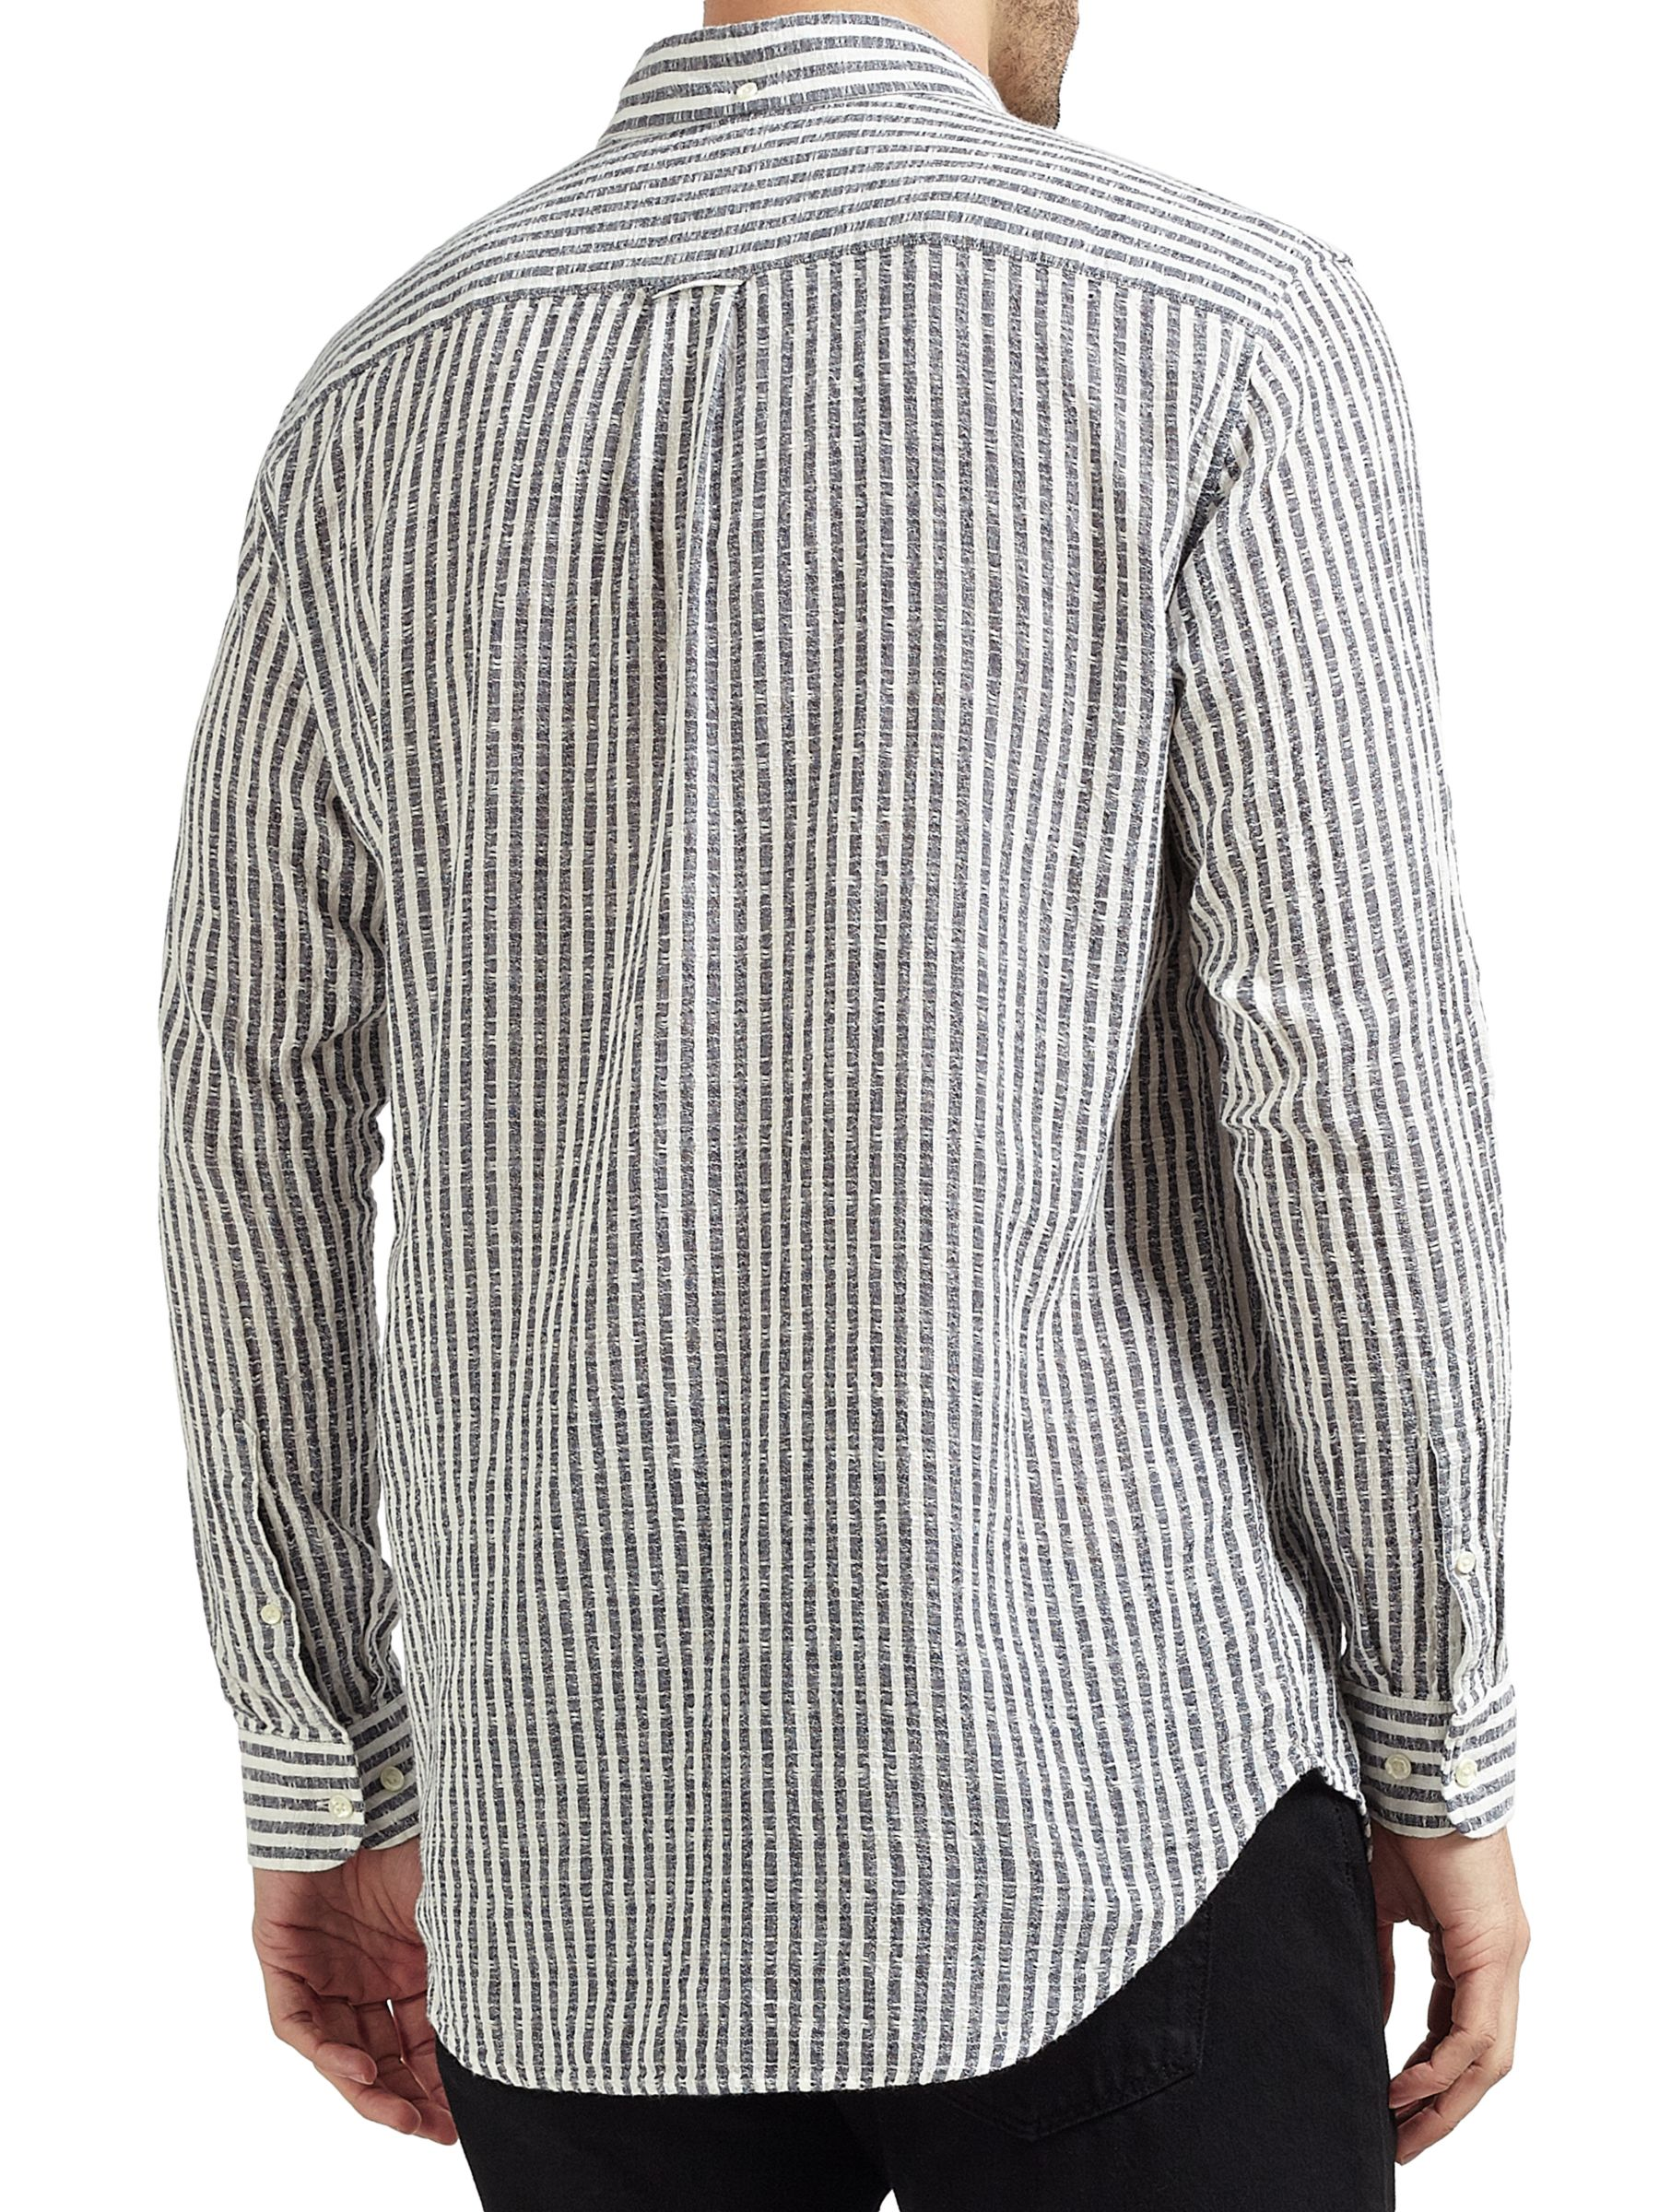 Gant Rugger Gant Rugger Striped Cotton-Linen Shirt, Evening Blue